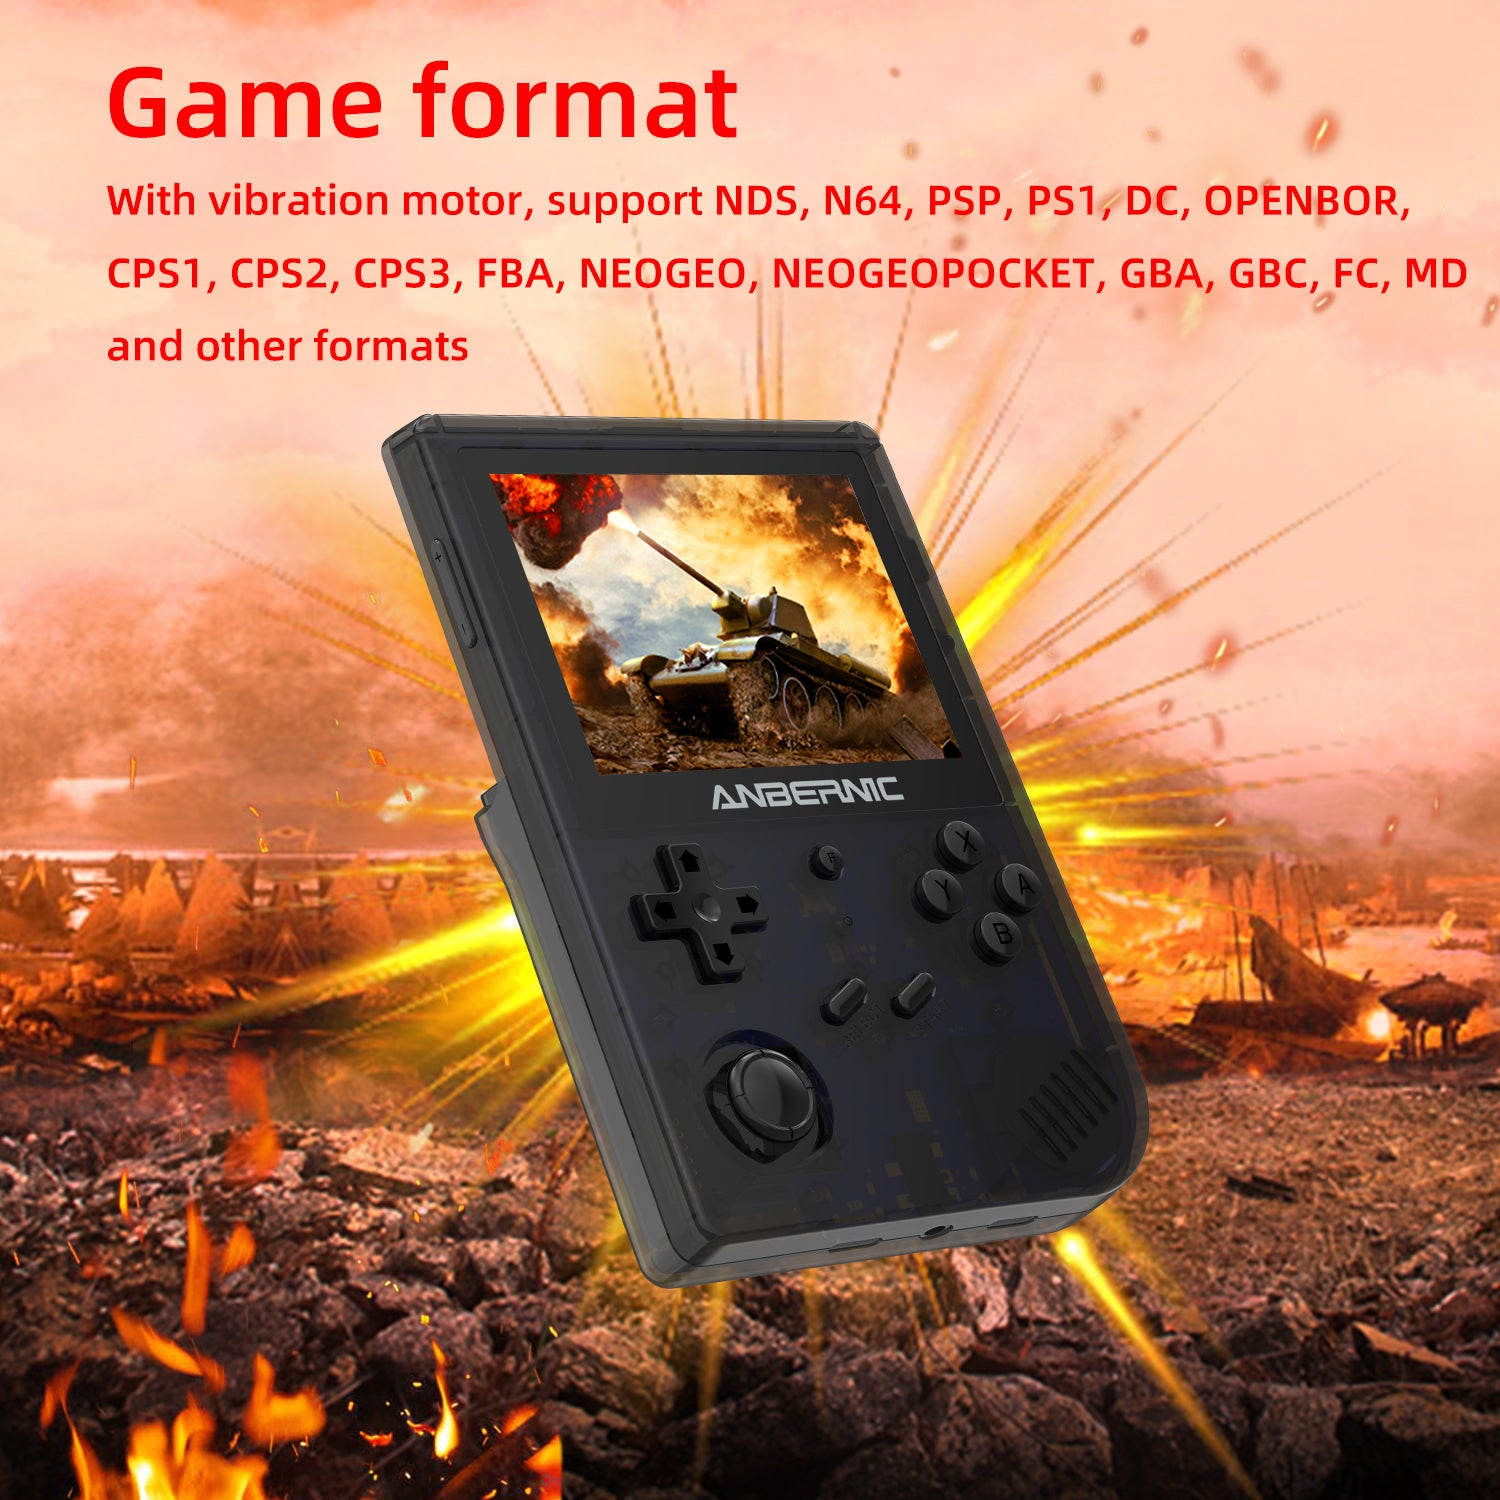 ANBERNIC RG351V Retro Gaming Handheld - Showing supported game formats